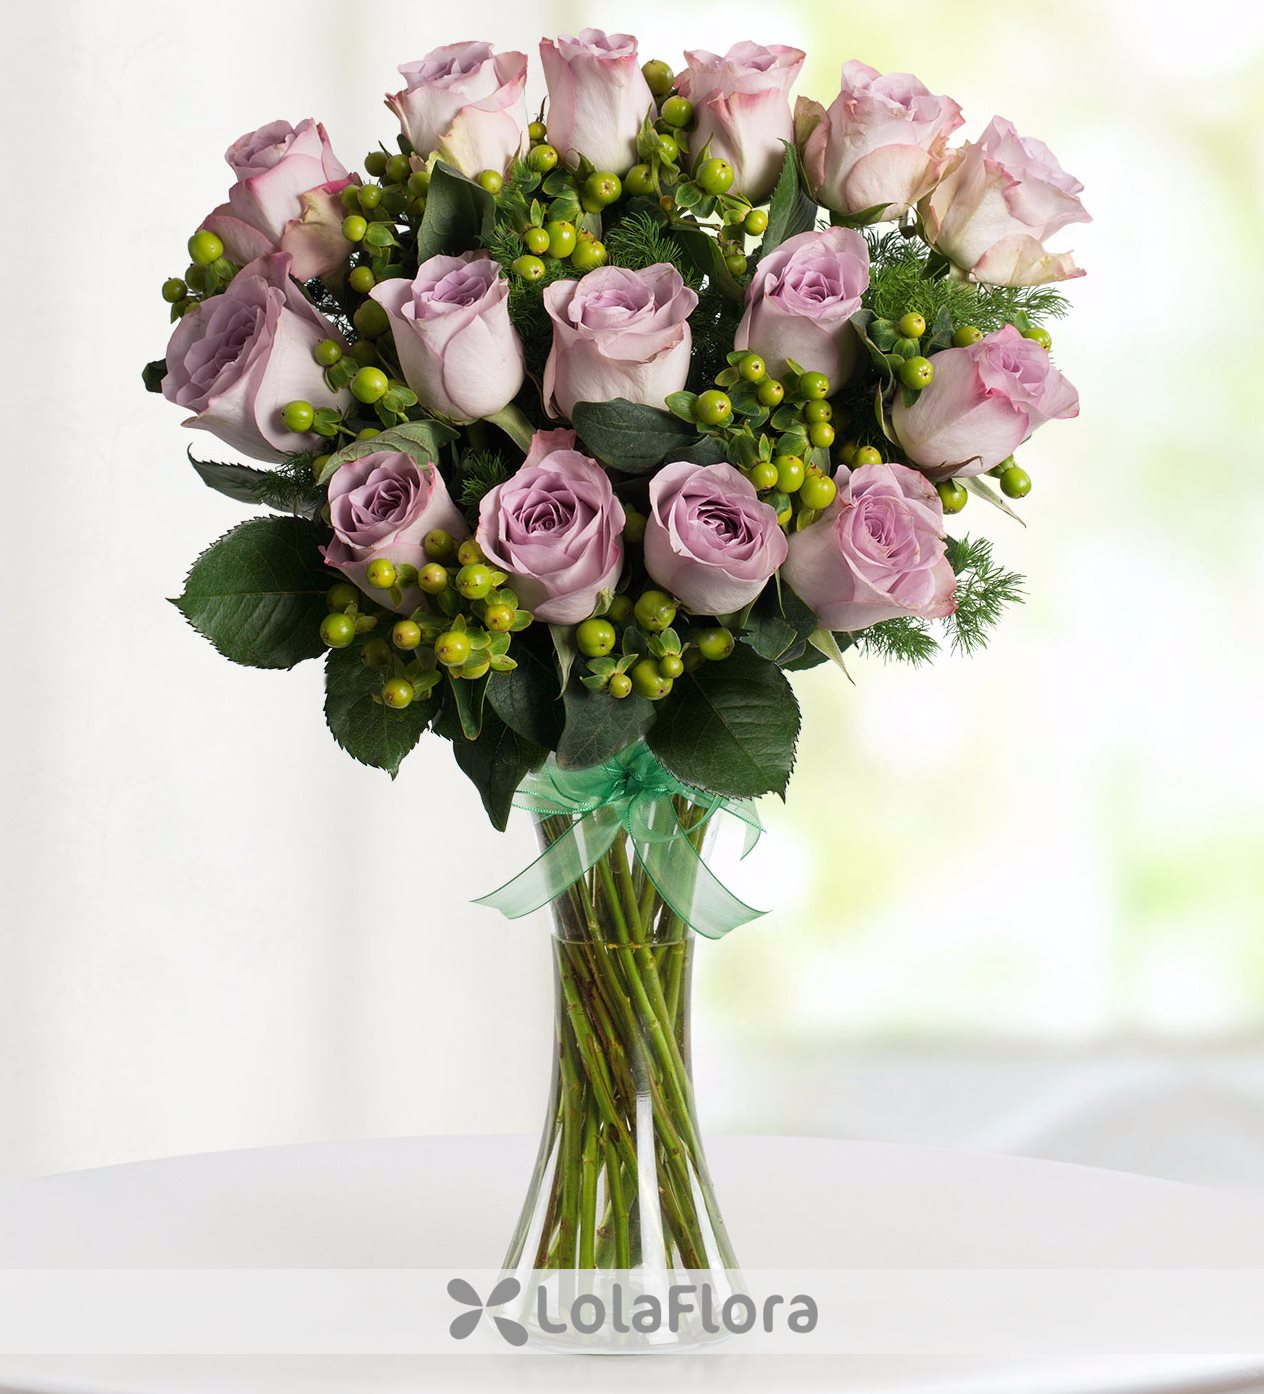 Sweetness large bouquet of 50 lilac roses lolaflora 15 lilac roses sweetness izmirmasajfo